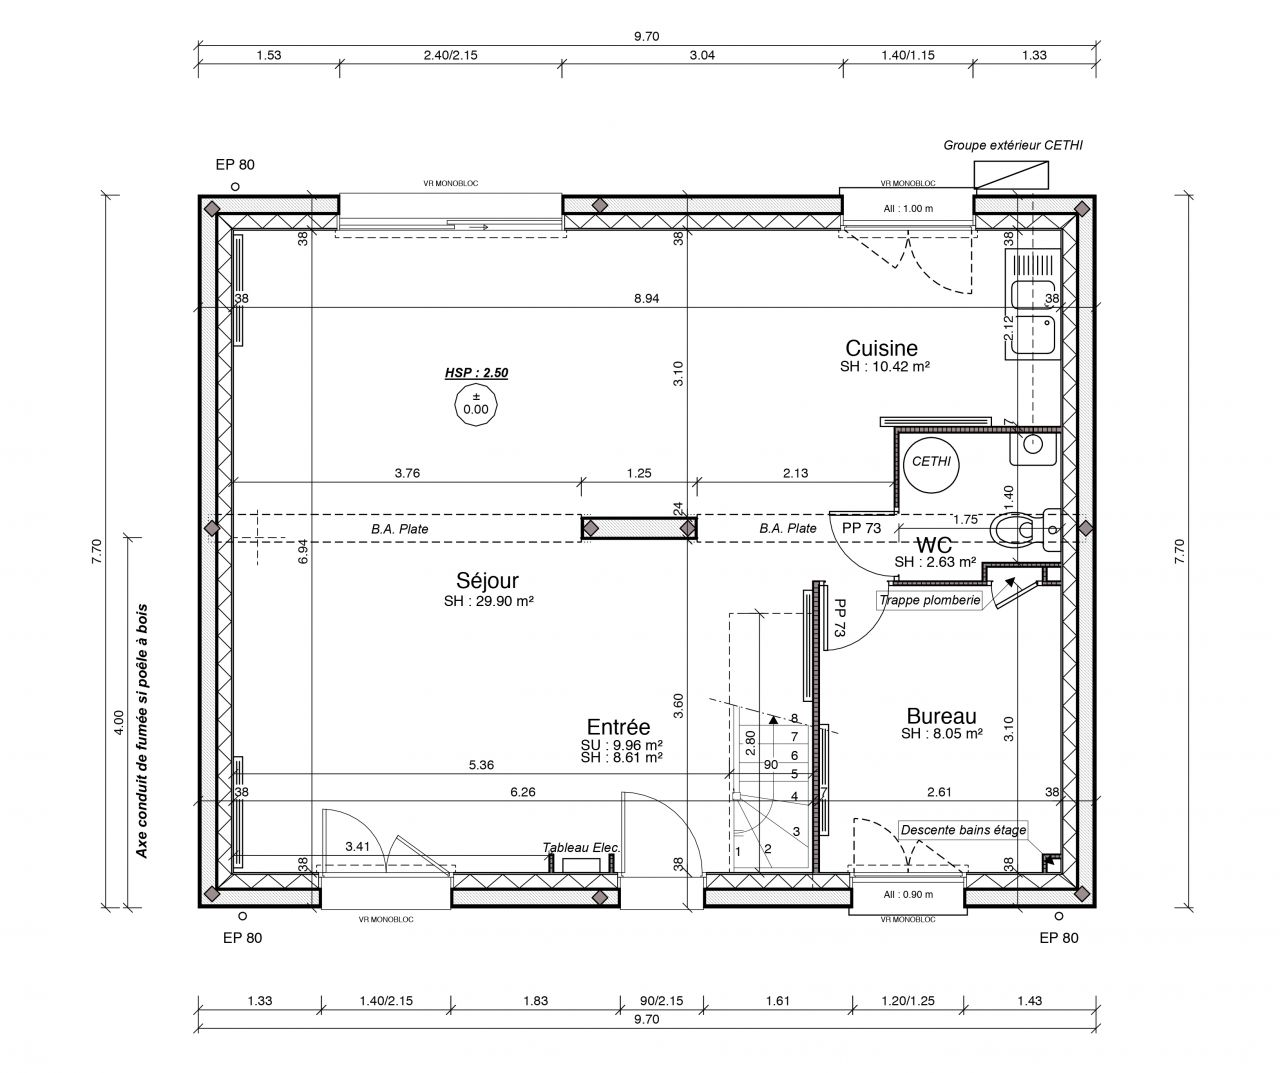 Avis sur plan maison de 120 m2 en r 1 avec garage r solu for Modification de plan de maison